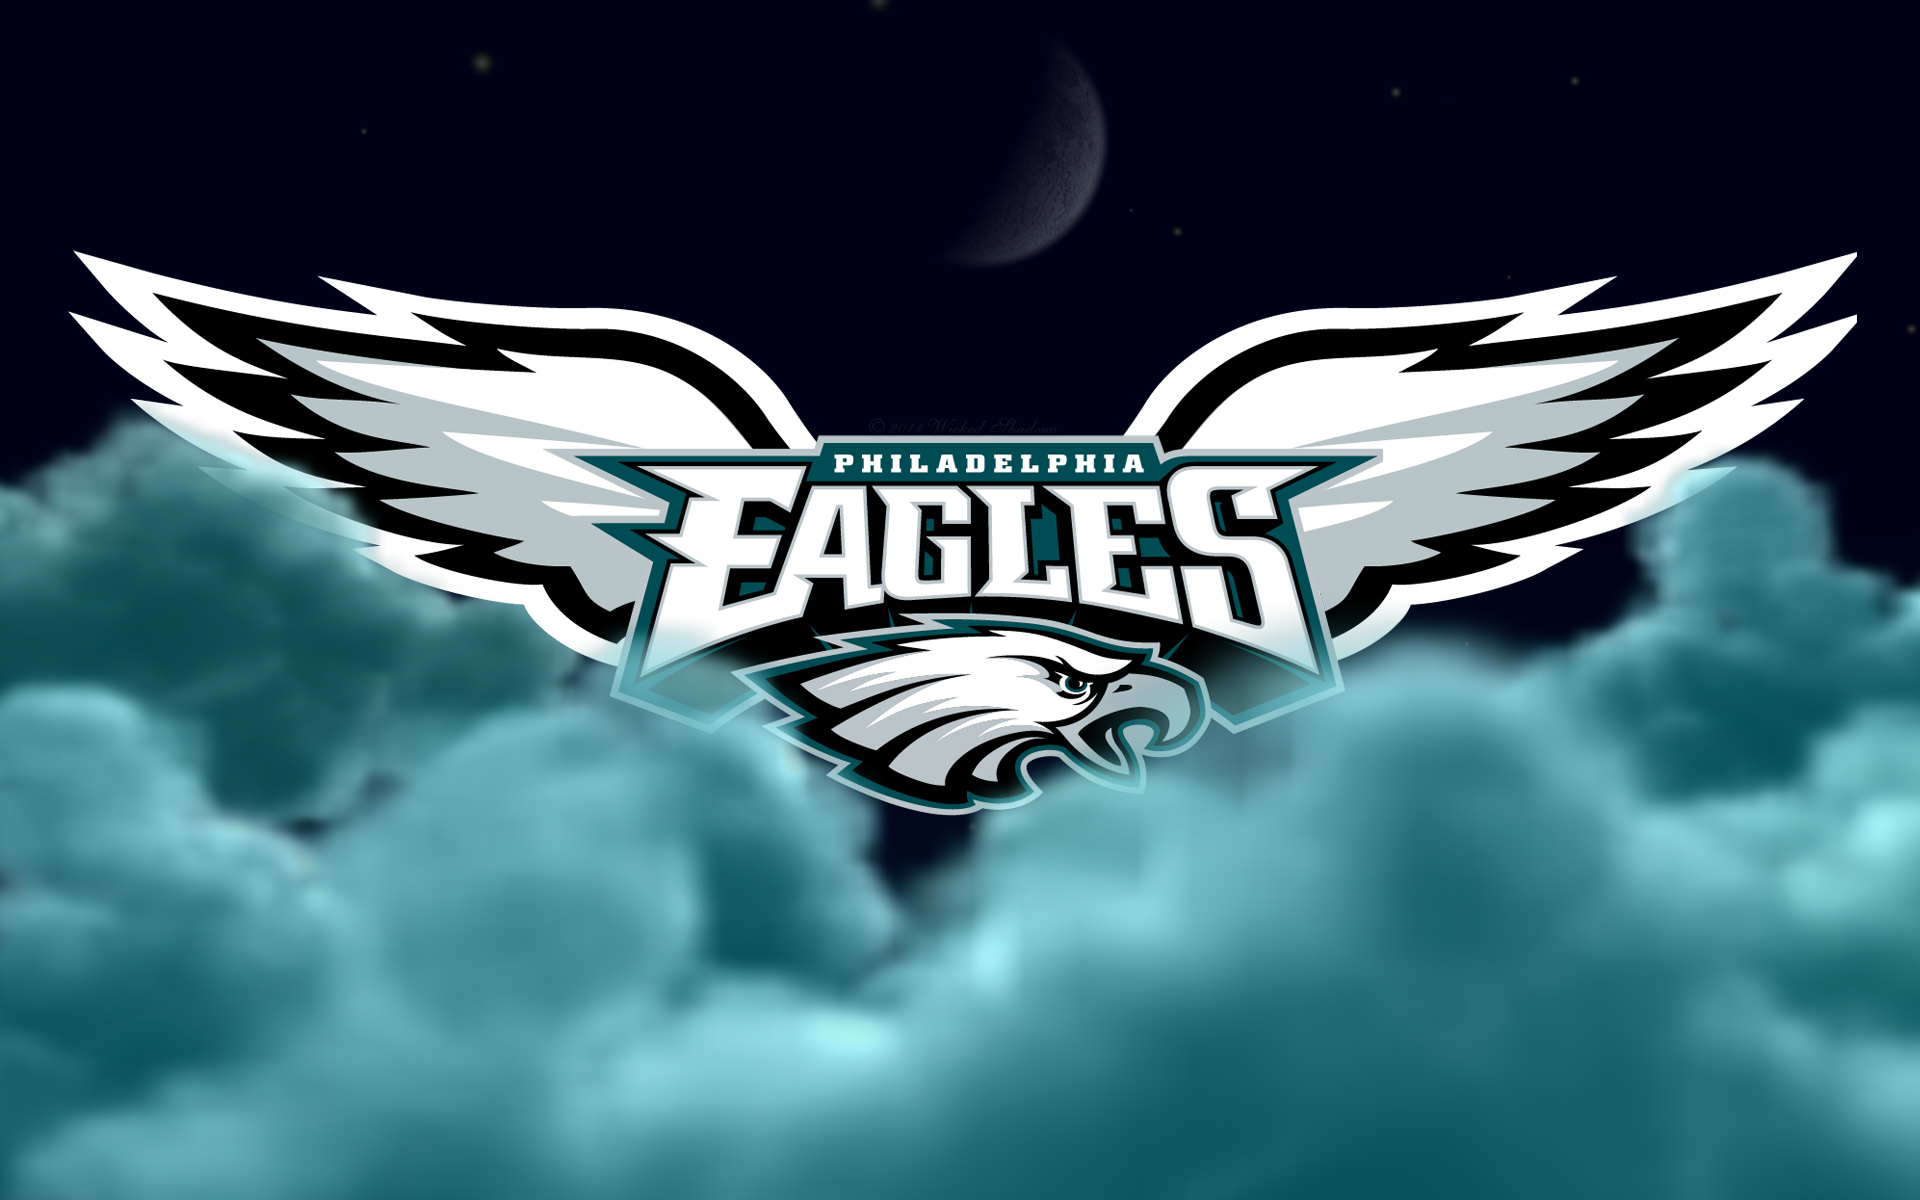 Philadelphia Eagles Wallpapers 2017 2018 Best Cars Reviews